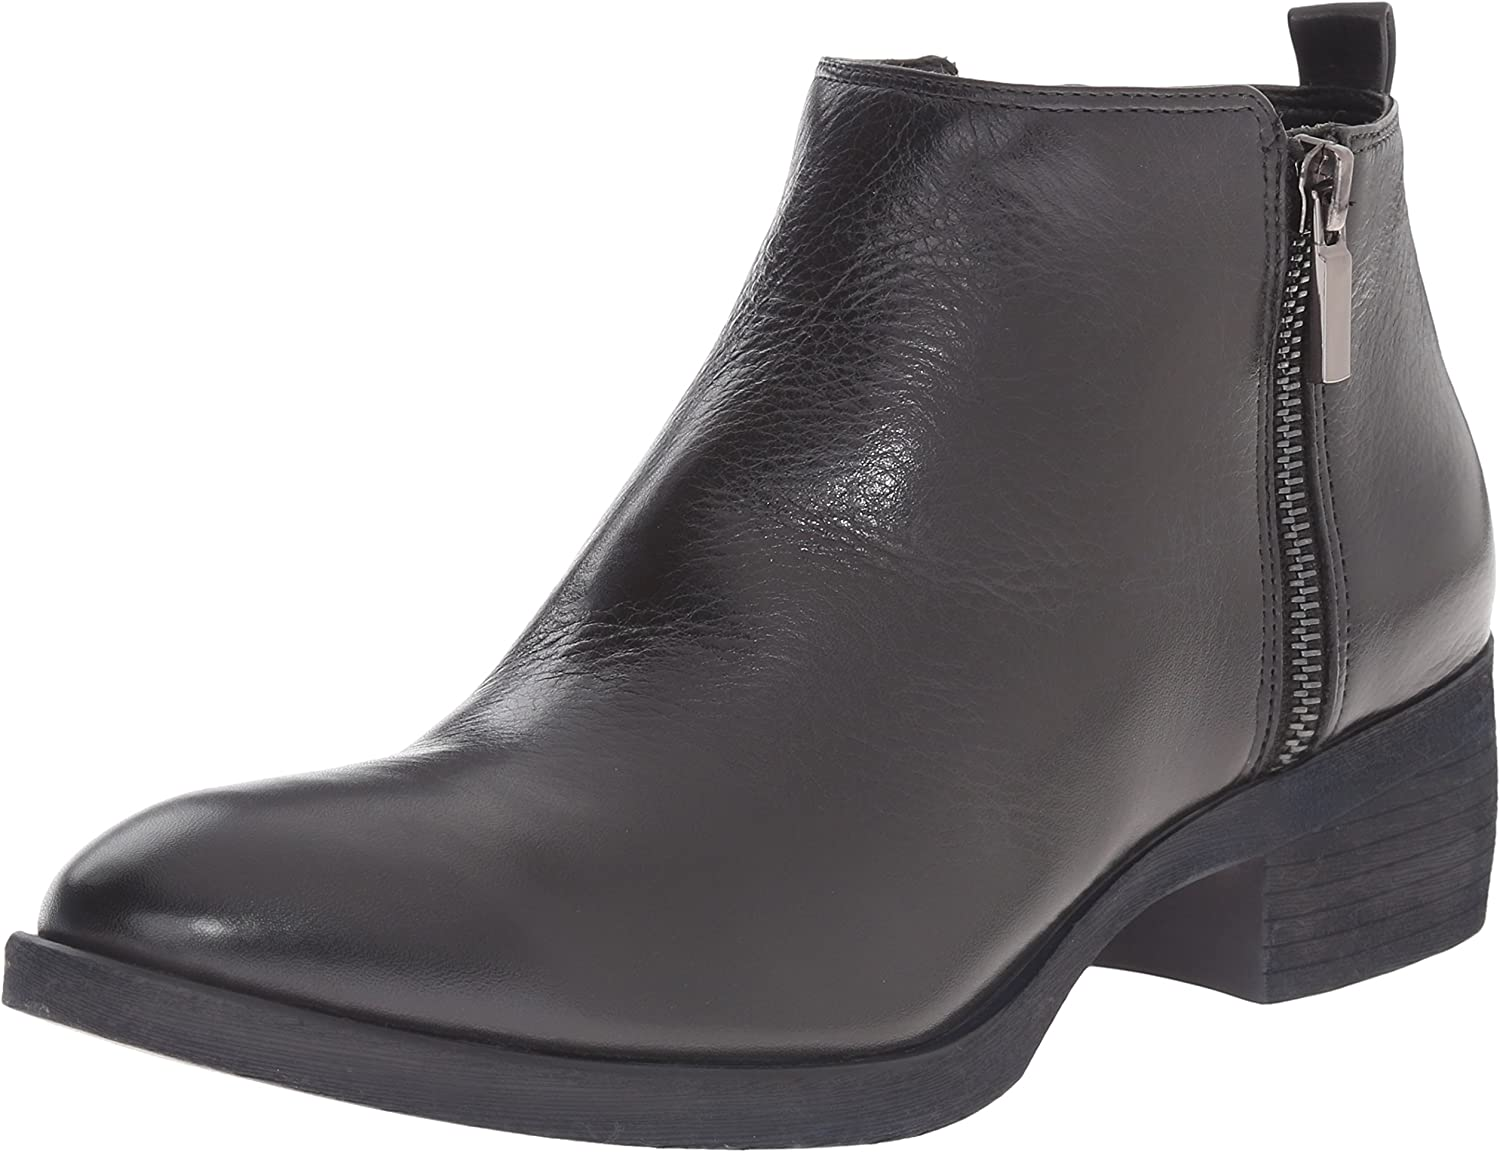 Kenneth Cole New York Women's 7-Levon Dual Zip Bootie Ankle Boot